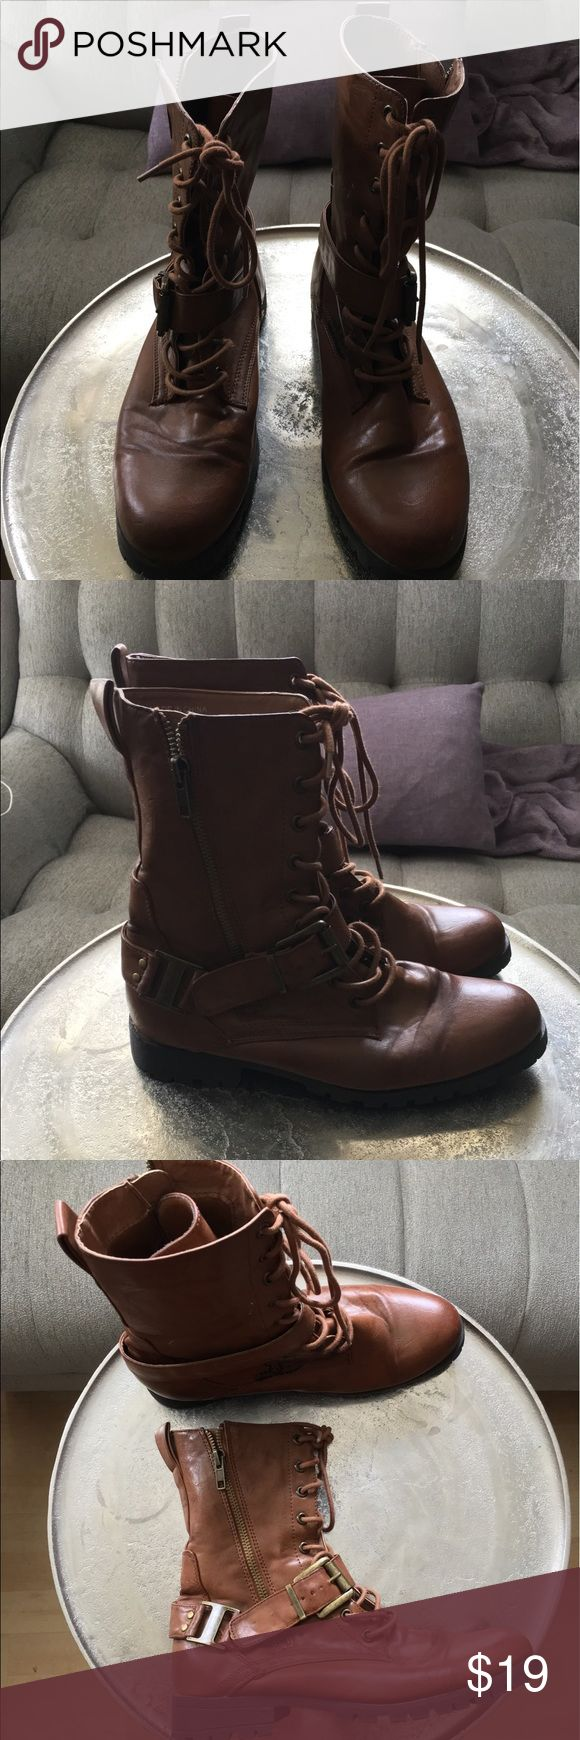 Women's combat boots Tan zipper combat boots / California drawn cactus on one side complimentary- hardly worn at all Forever 21 Shoes Combat & Moto Boots